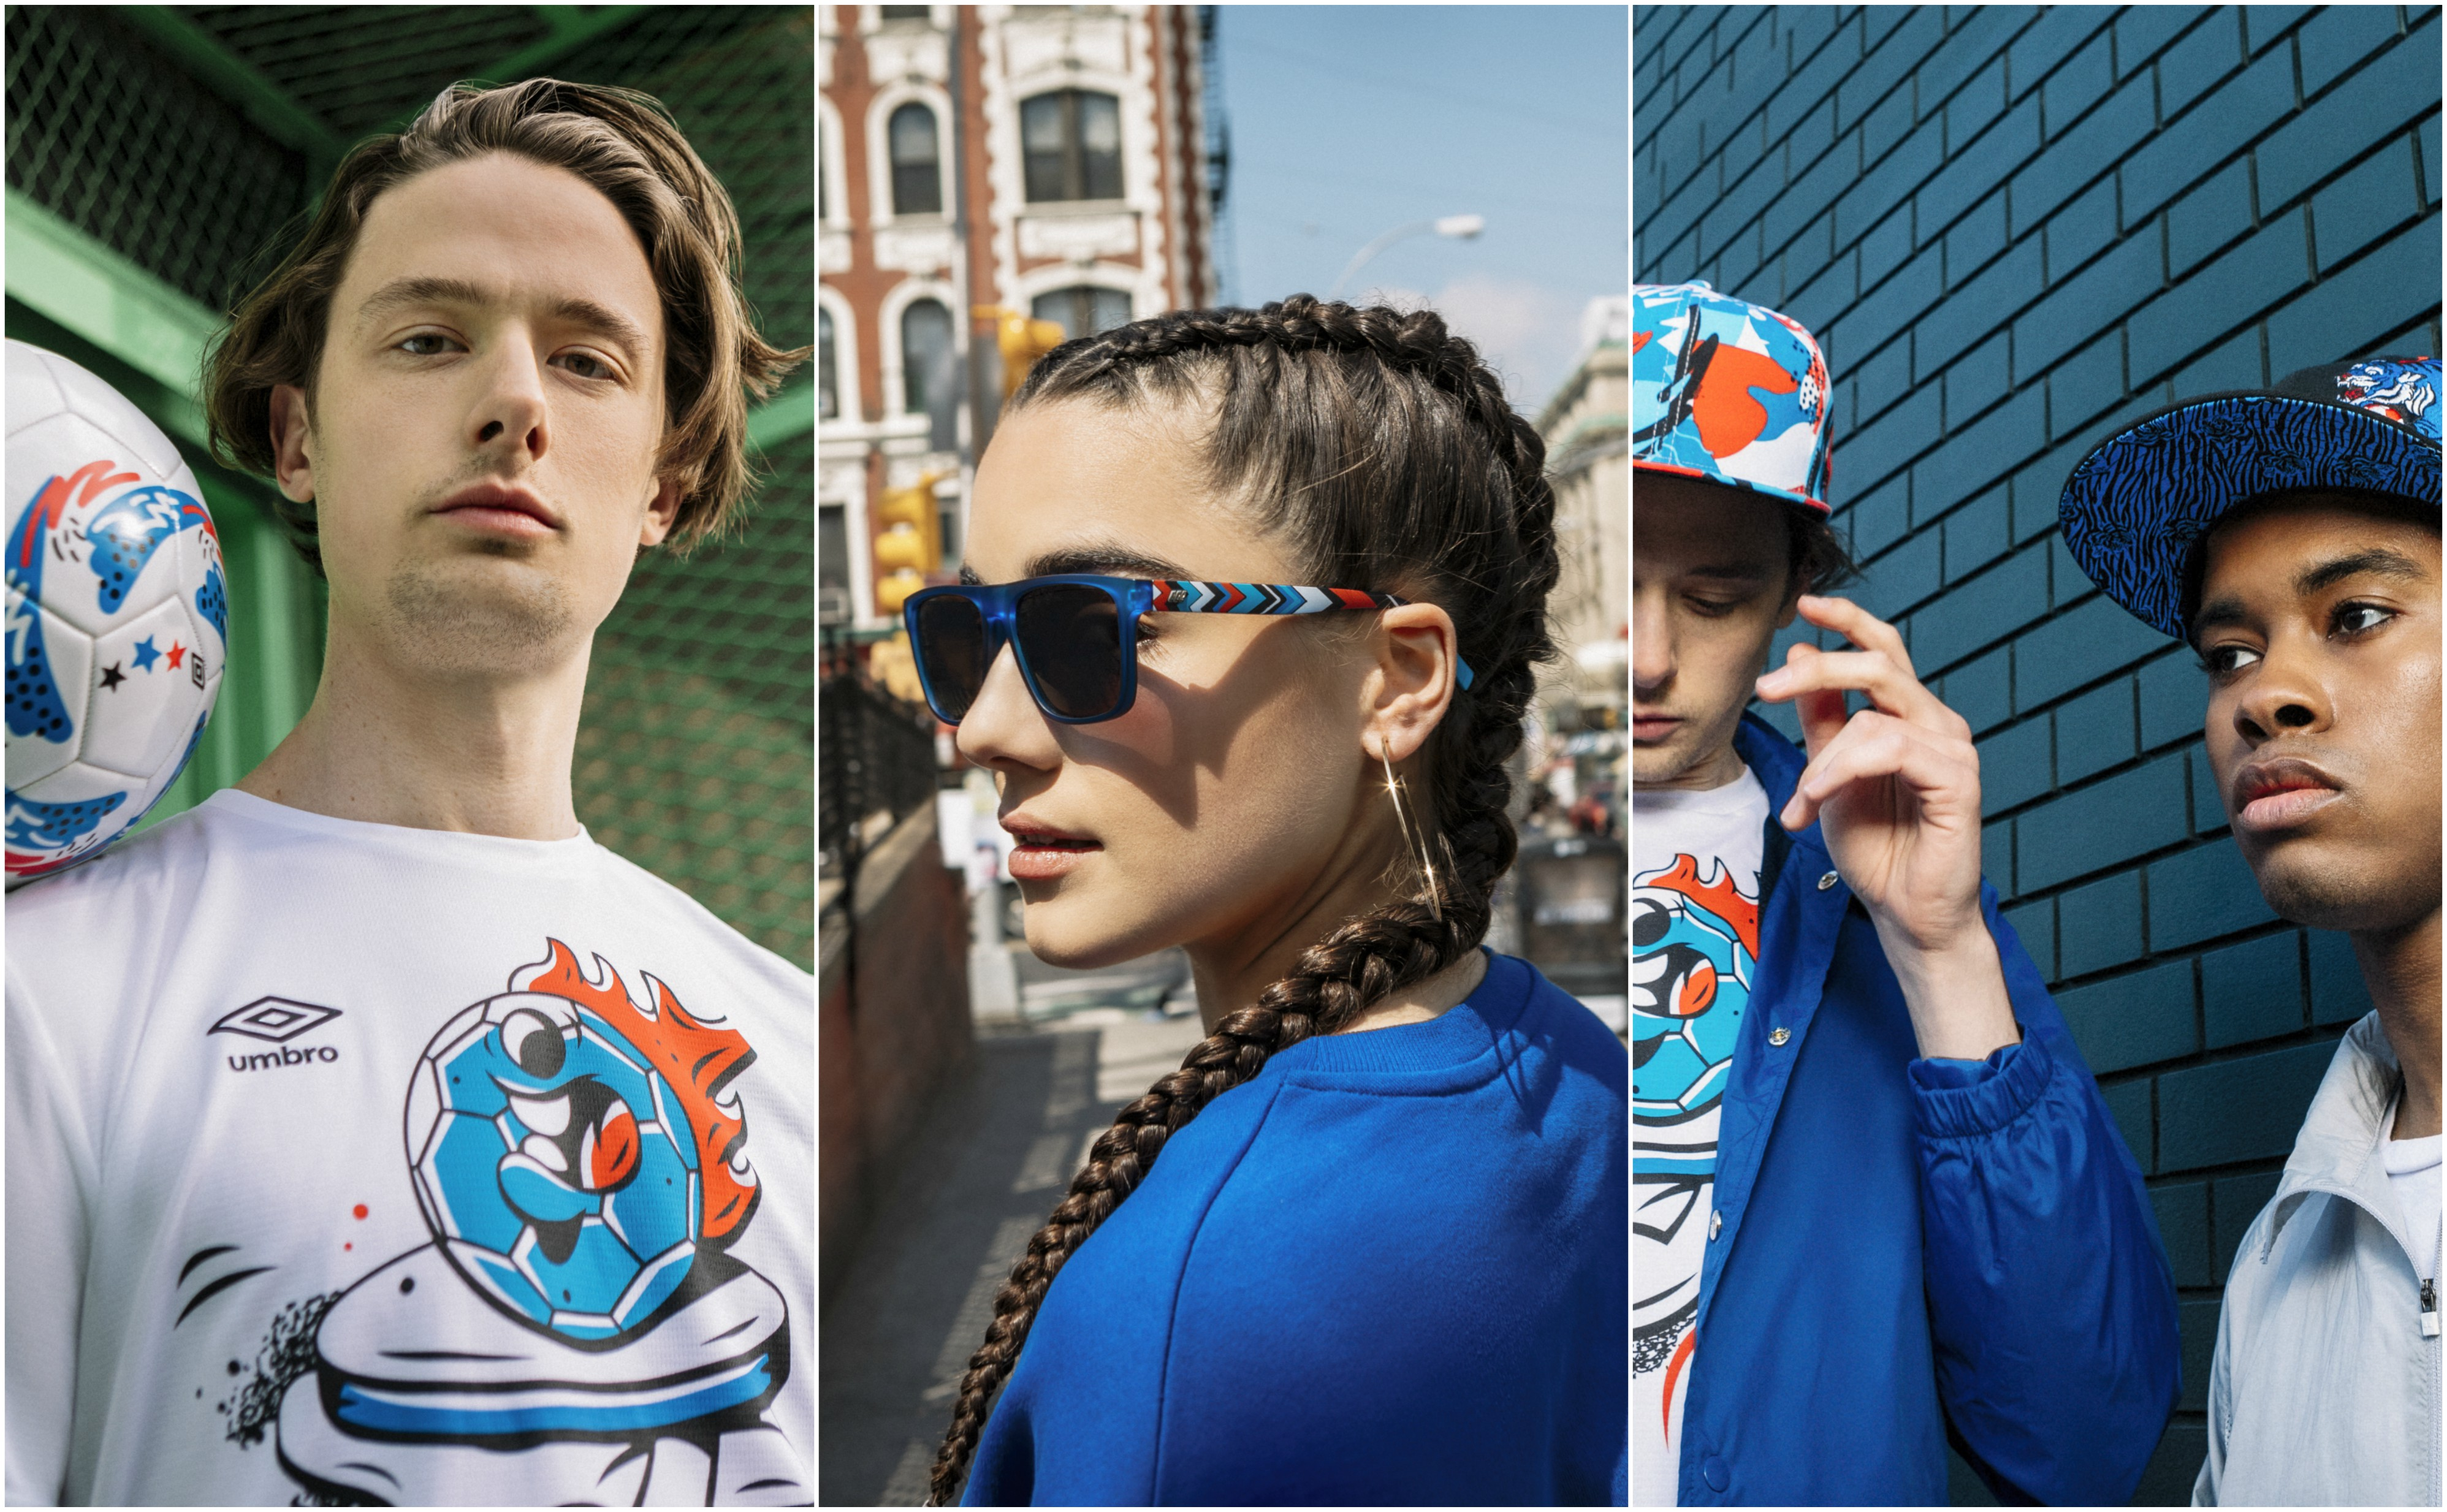 Pieces from the 2018 Pepsi Art of Football capsule collection.